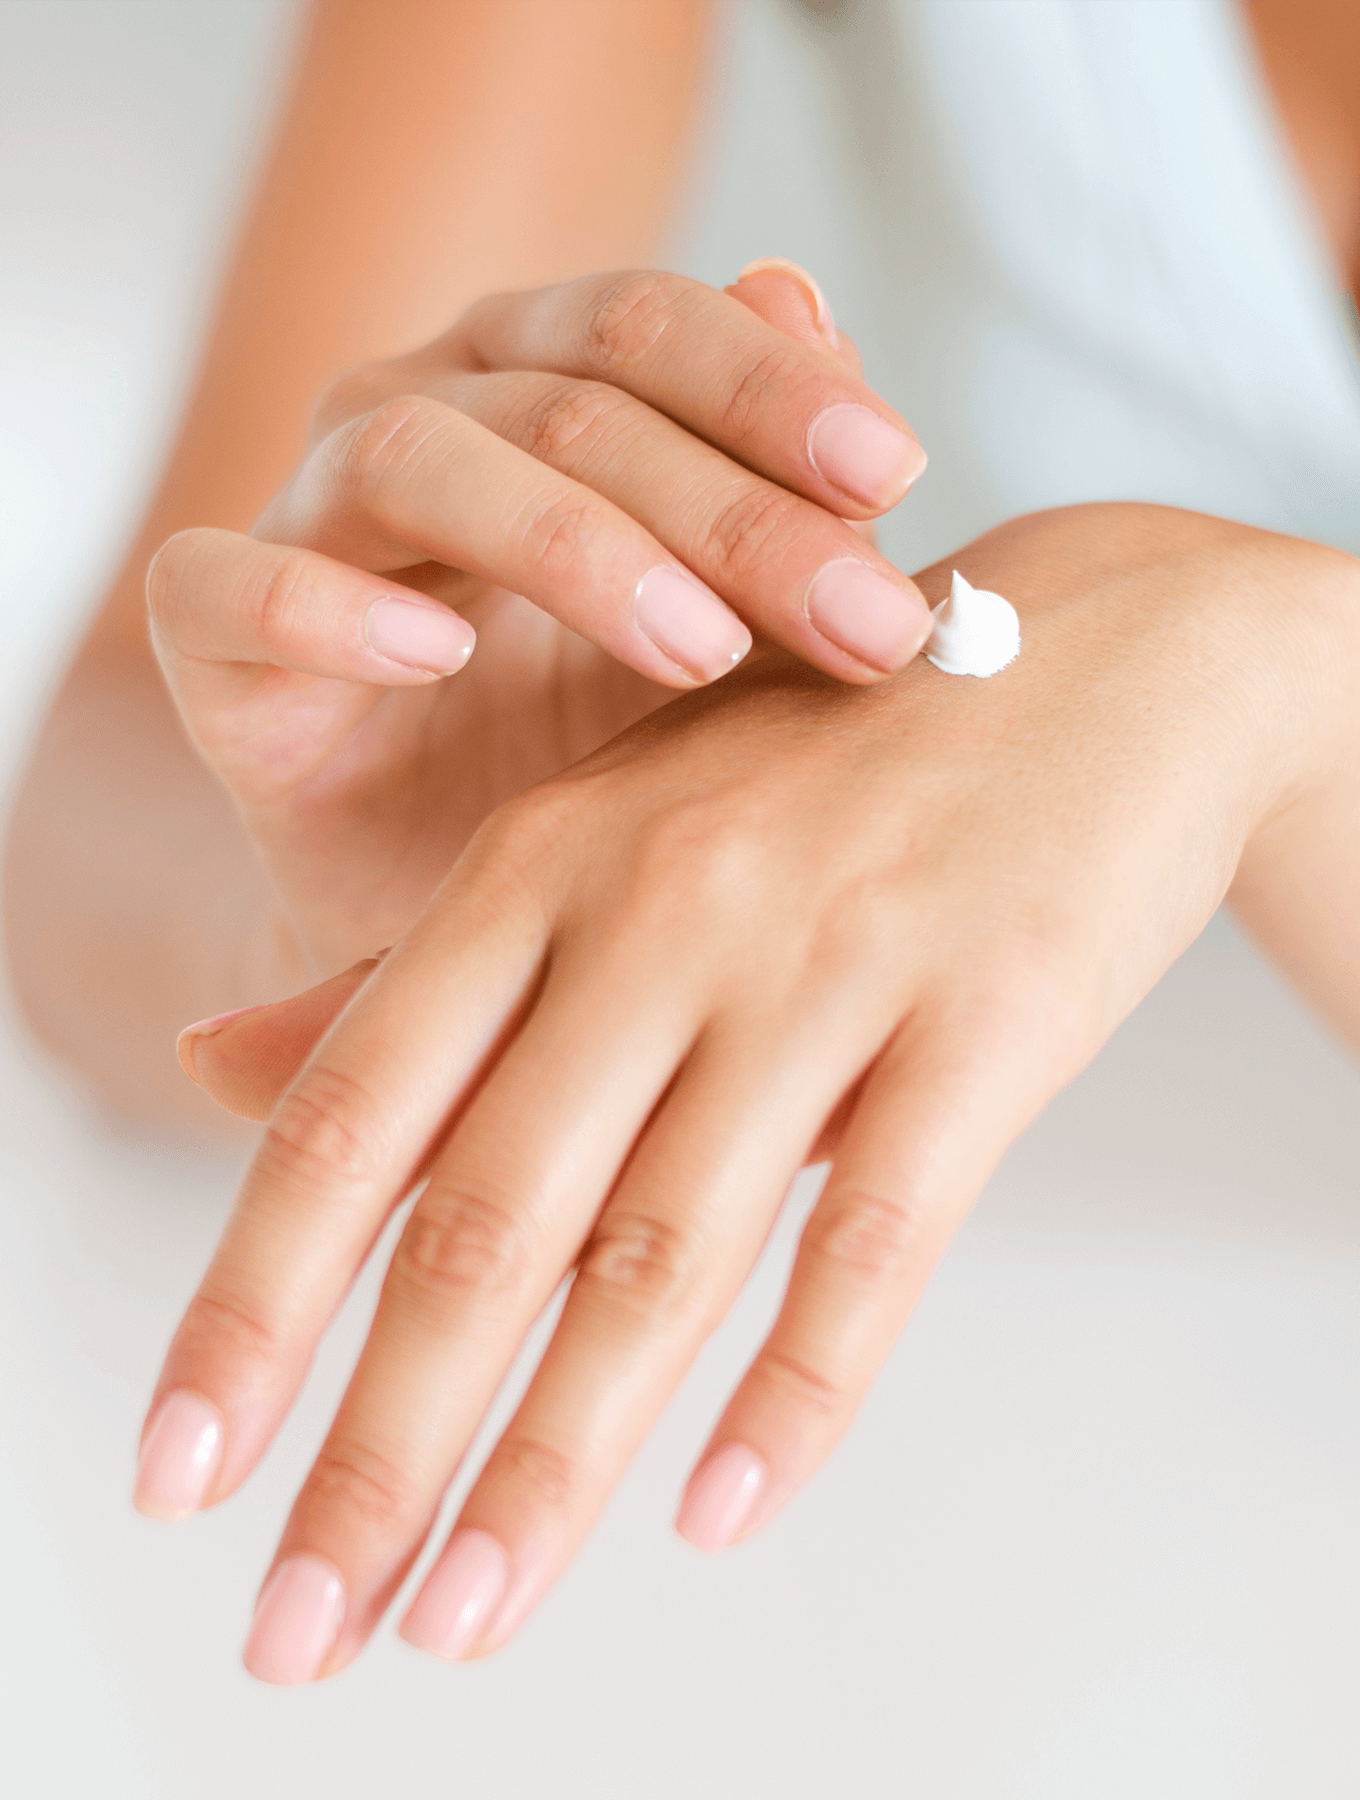 The Best Hand Creams For Dry Cracked Hands It Can Be Impossible To